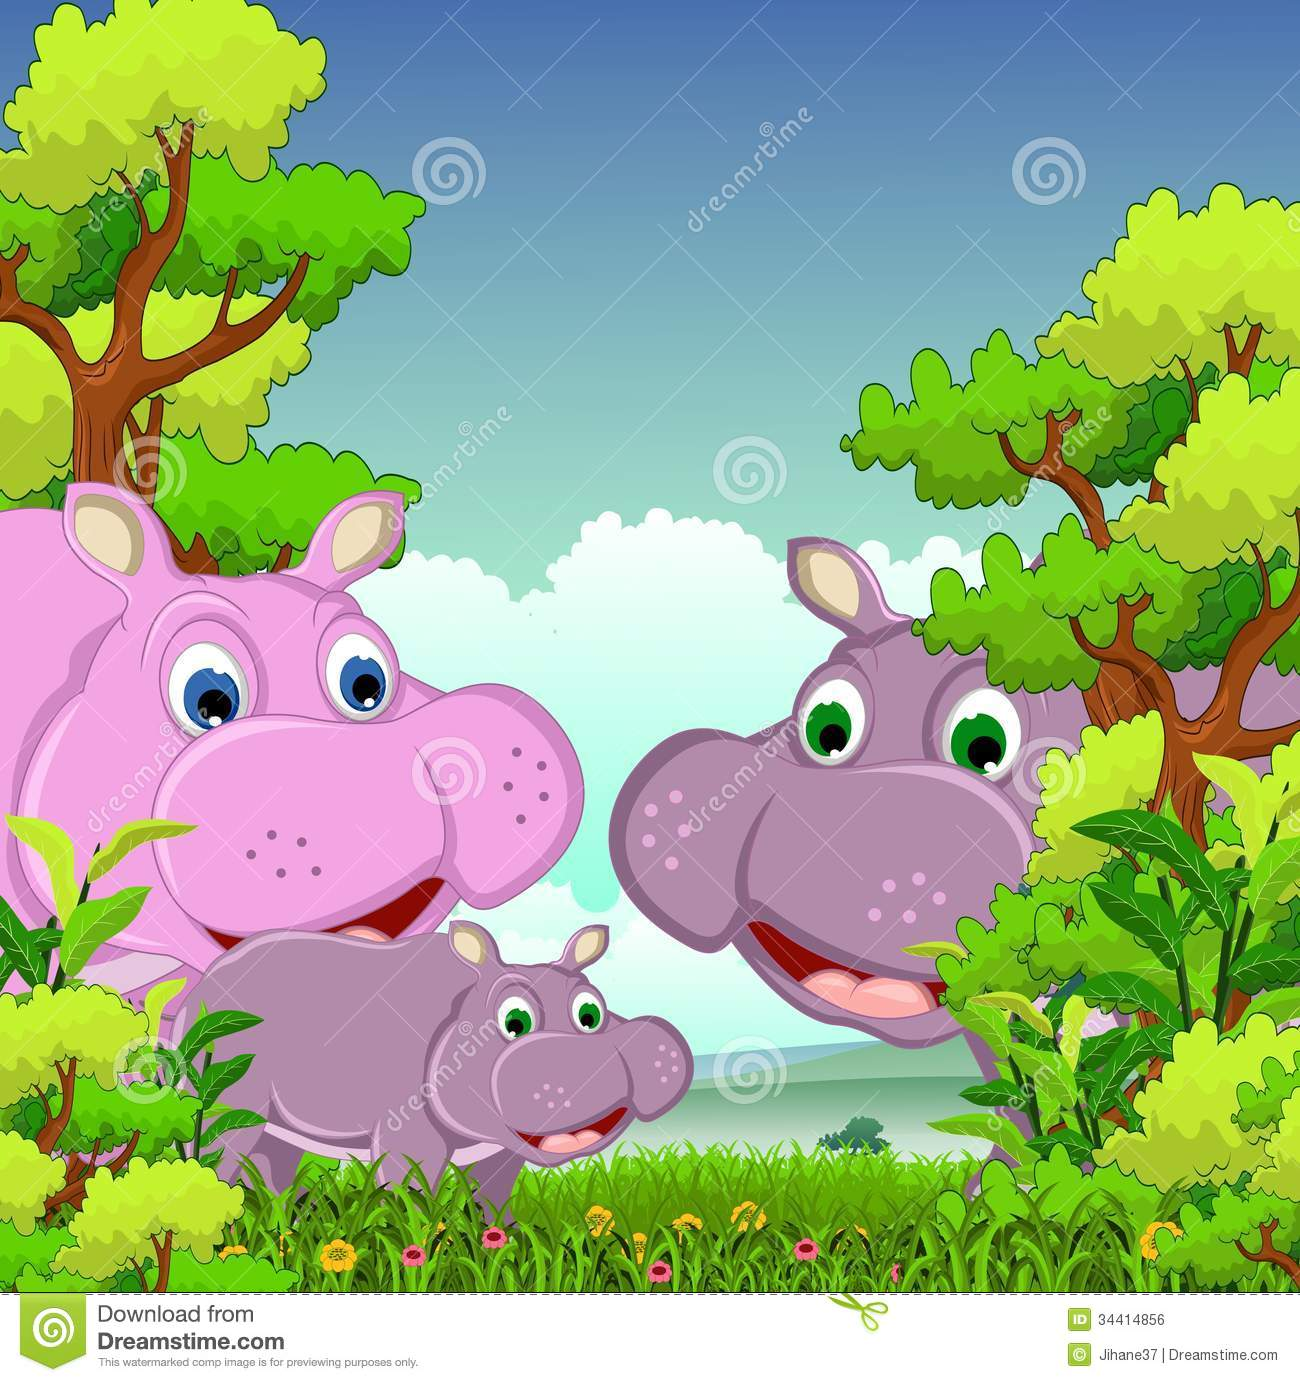 Cute Cartoon Birds Wallpapers Family Of Hippo Cartoon With Forest Background Royalty